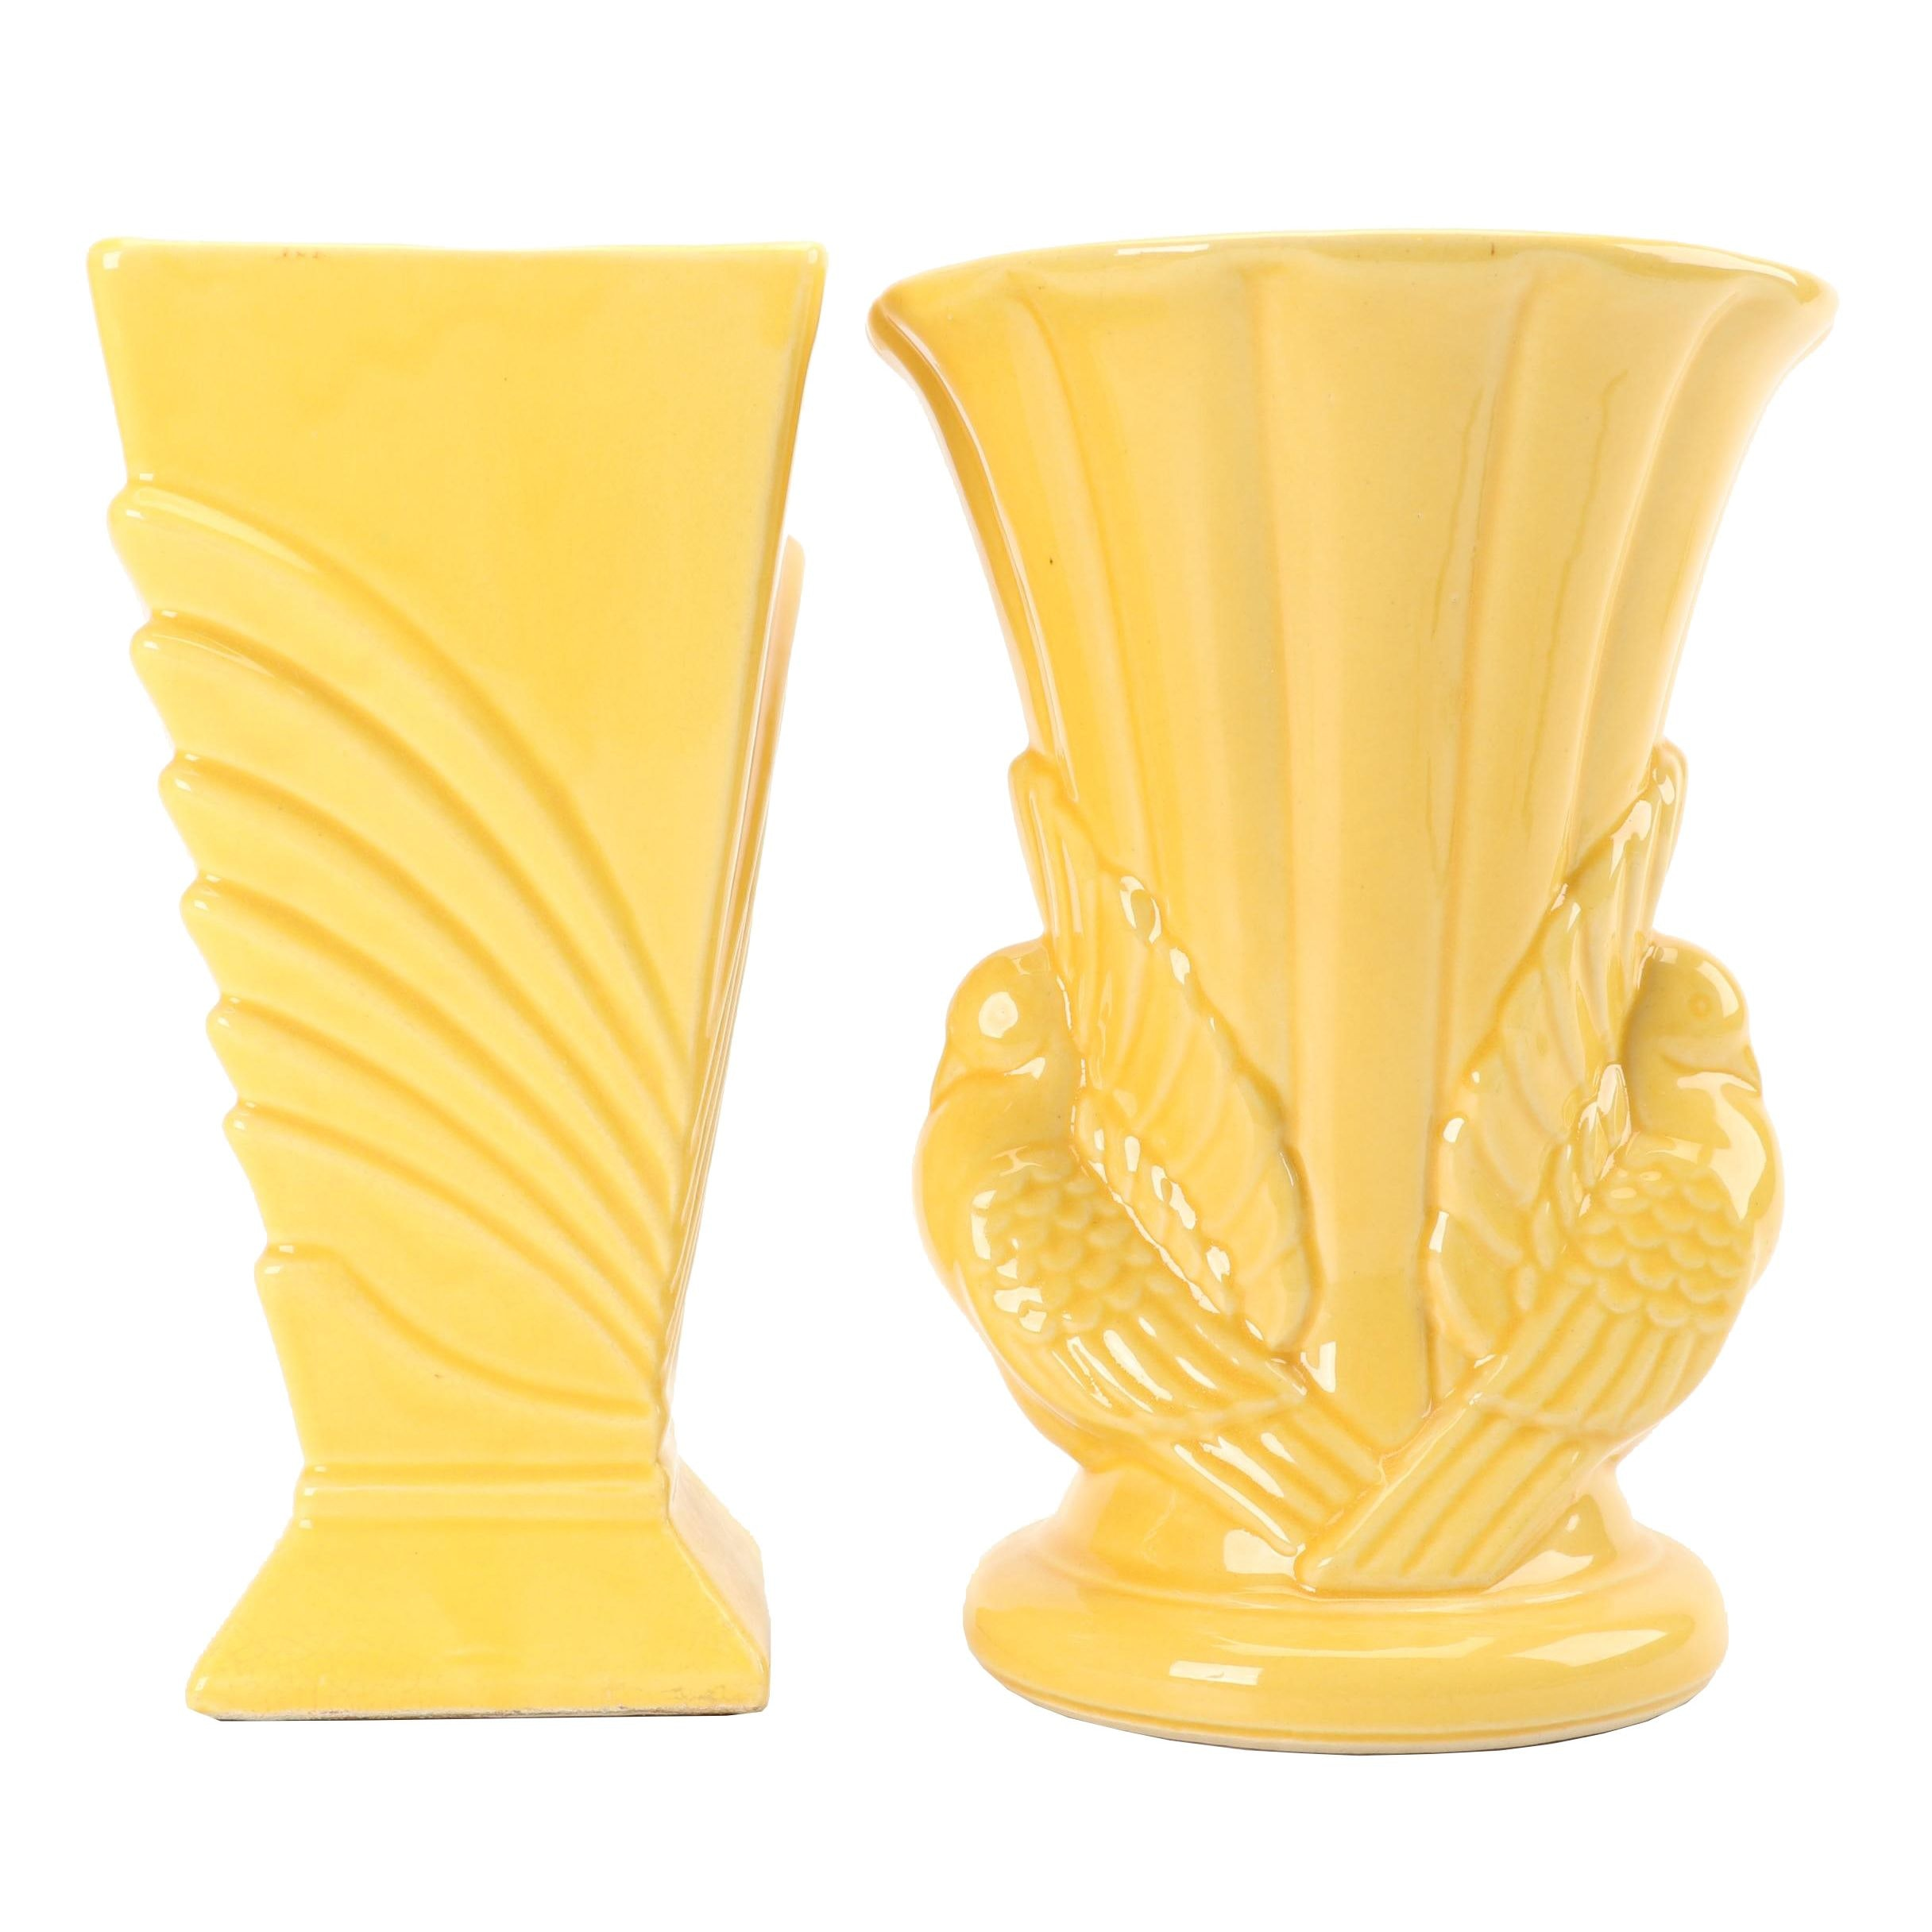 McCoy and Shawnee Vases, circa 1940